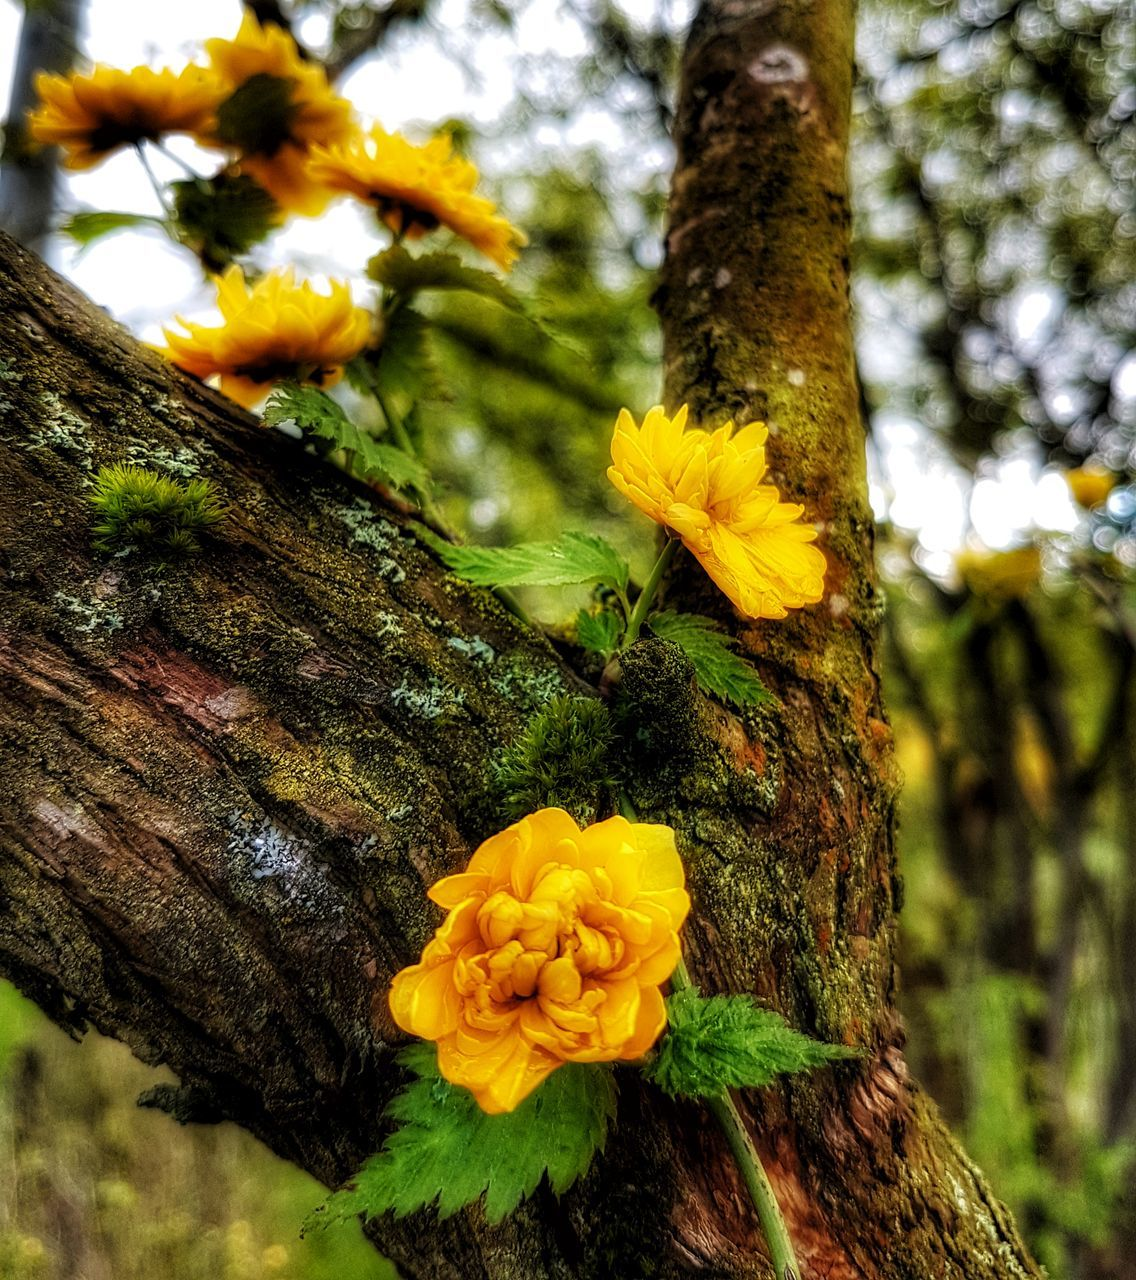 flower, growth, nature, fragility, beauty in nature, yellow, tree trunk, freshness, tree, no people, day, petal, close-up, outdoors, focus on foreground, flower head, plant